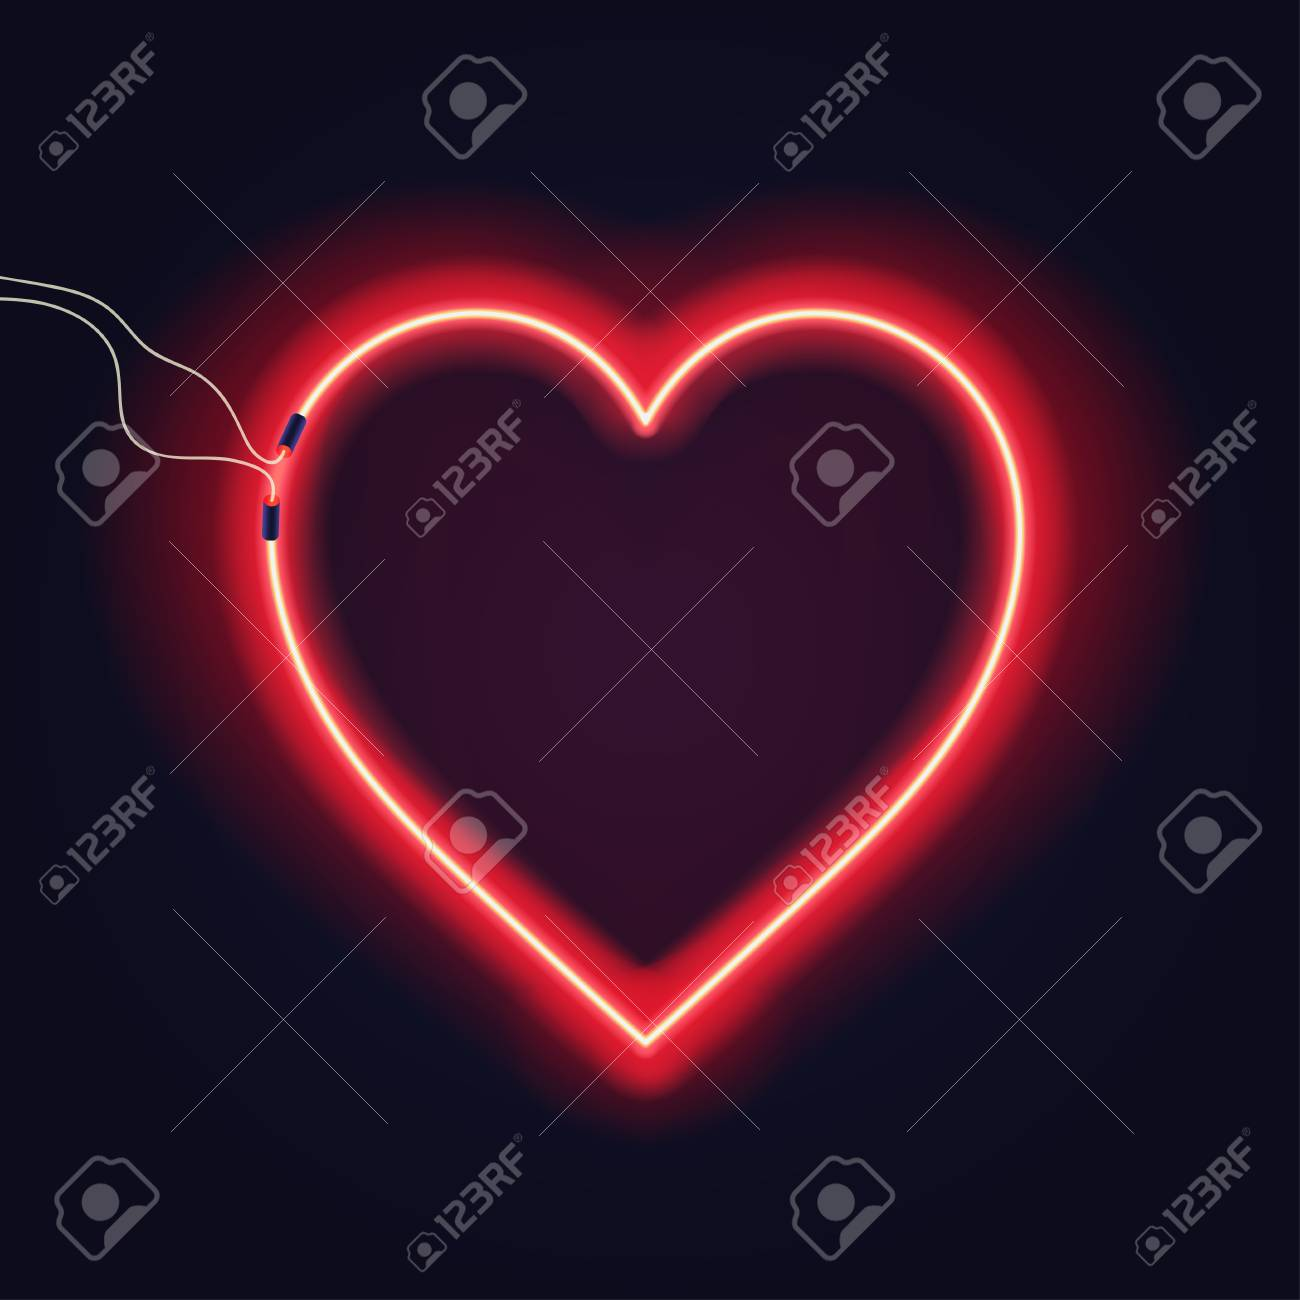 Neon heart sign with wires on dark background. Bright neon glow effect. Vector - 85822621